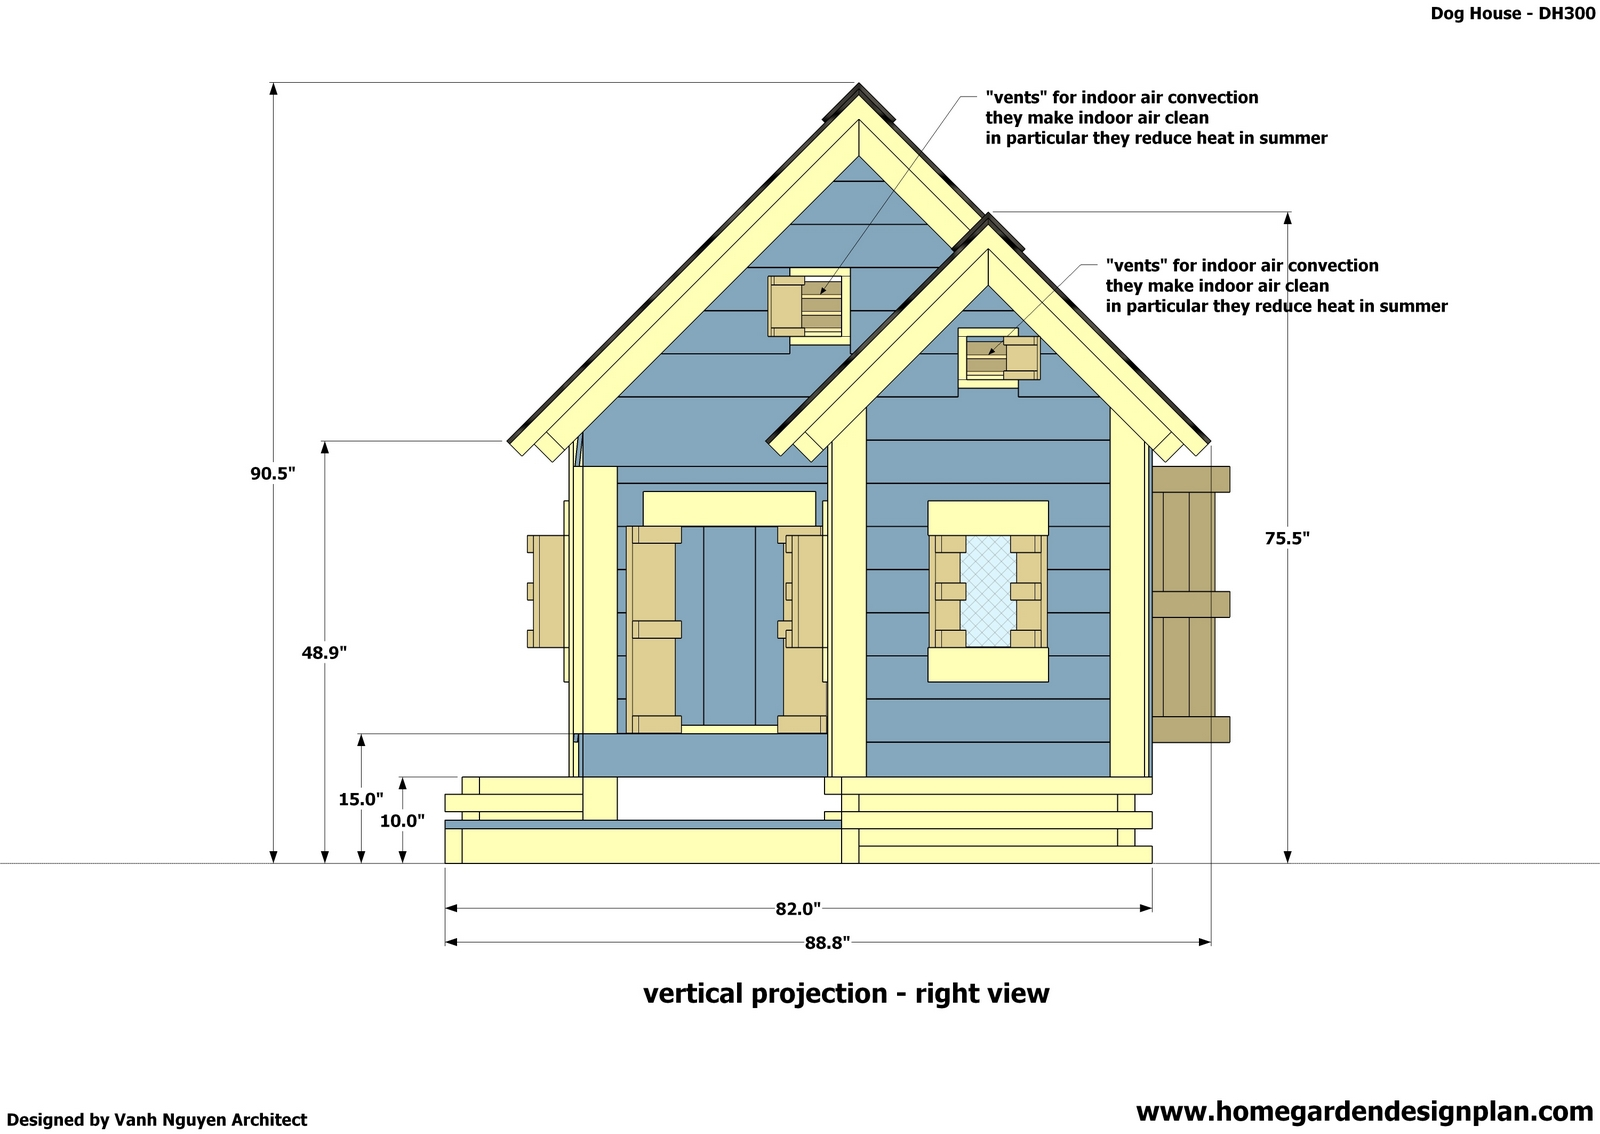 Home garden plans dh300 dog house plans free how to for House design online free